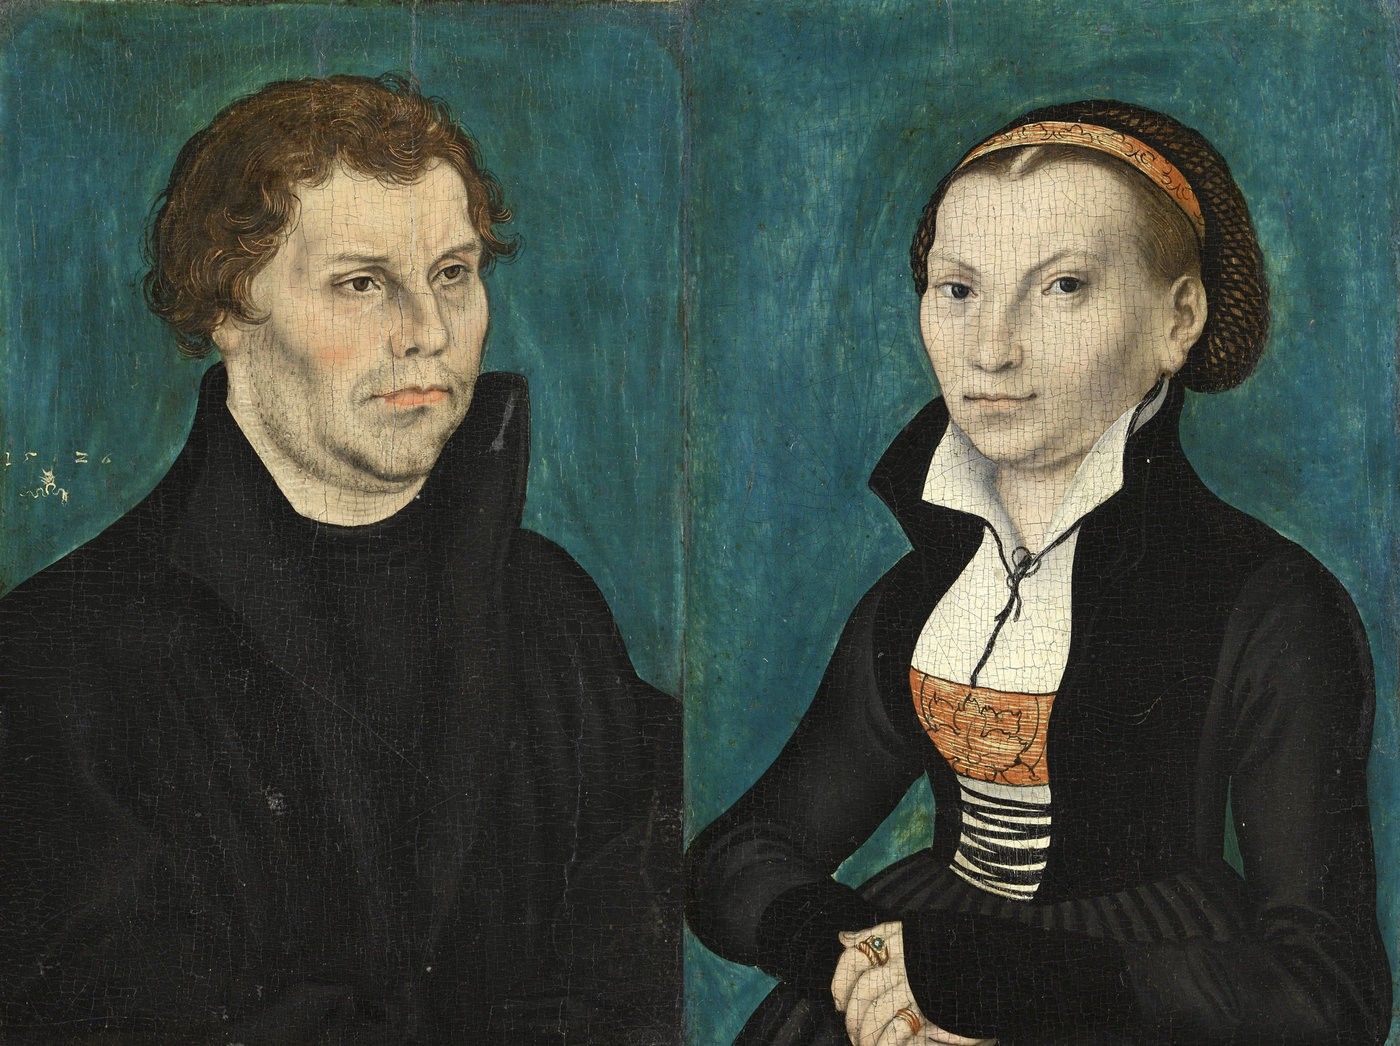 Medium lucas cranach the elder   bildnis martin luthers bildnis katharina luthers  1526  google art project